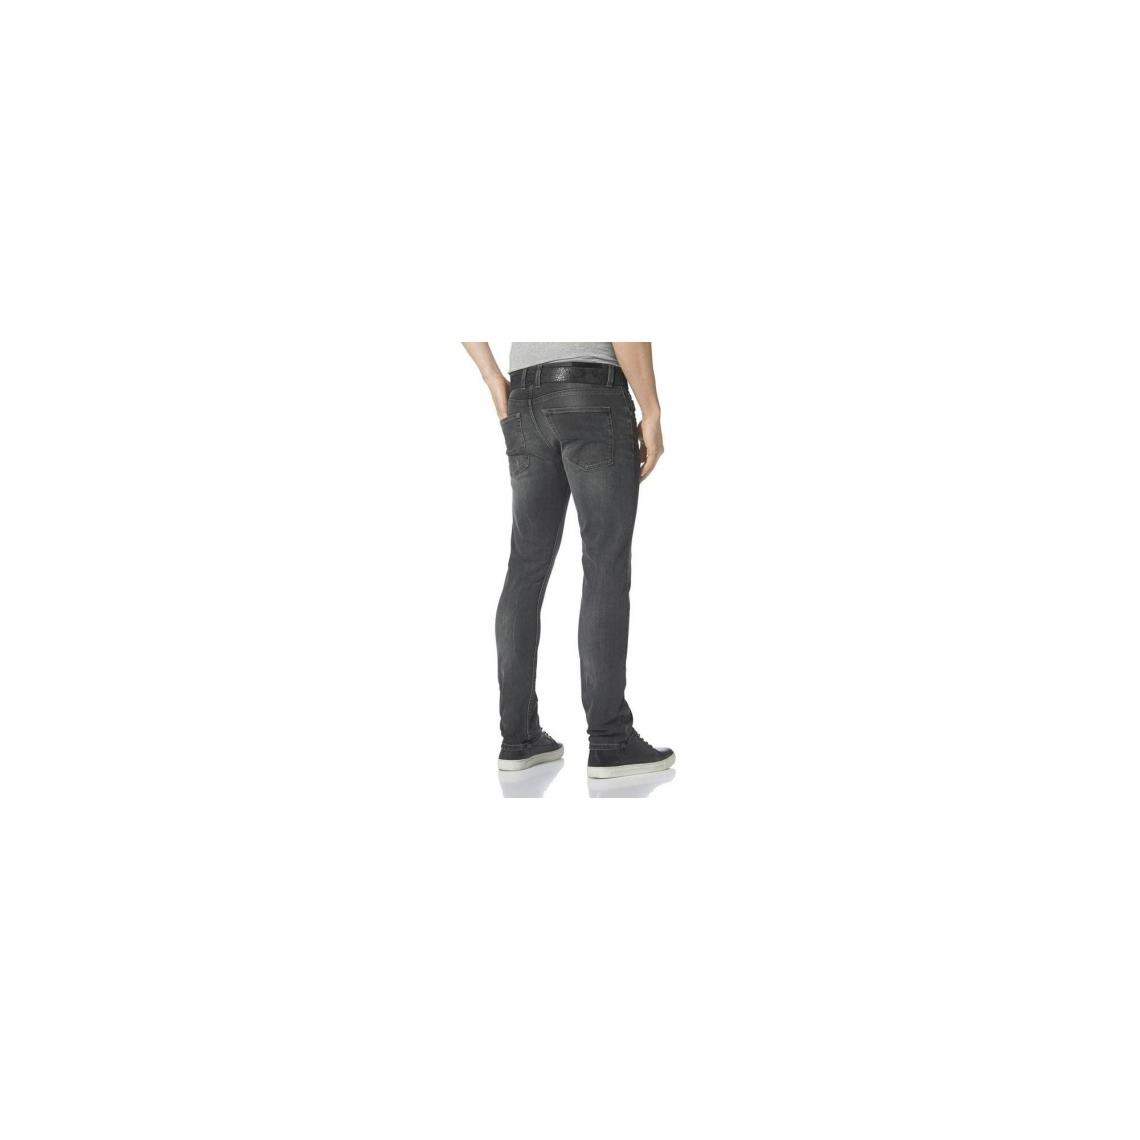 Bruno Banani Coupe Used Gris Slim 3suisses Jimmy Jean Homme Stretch YxXRUnnH